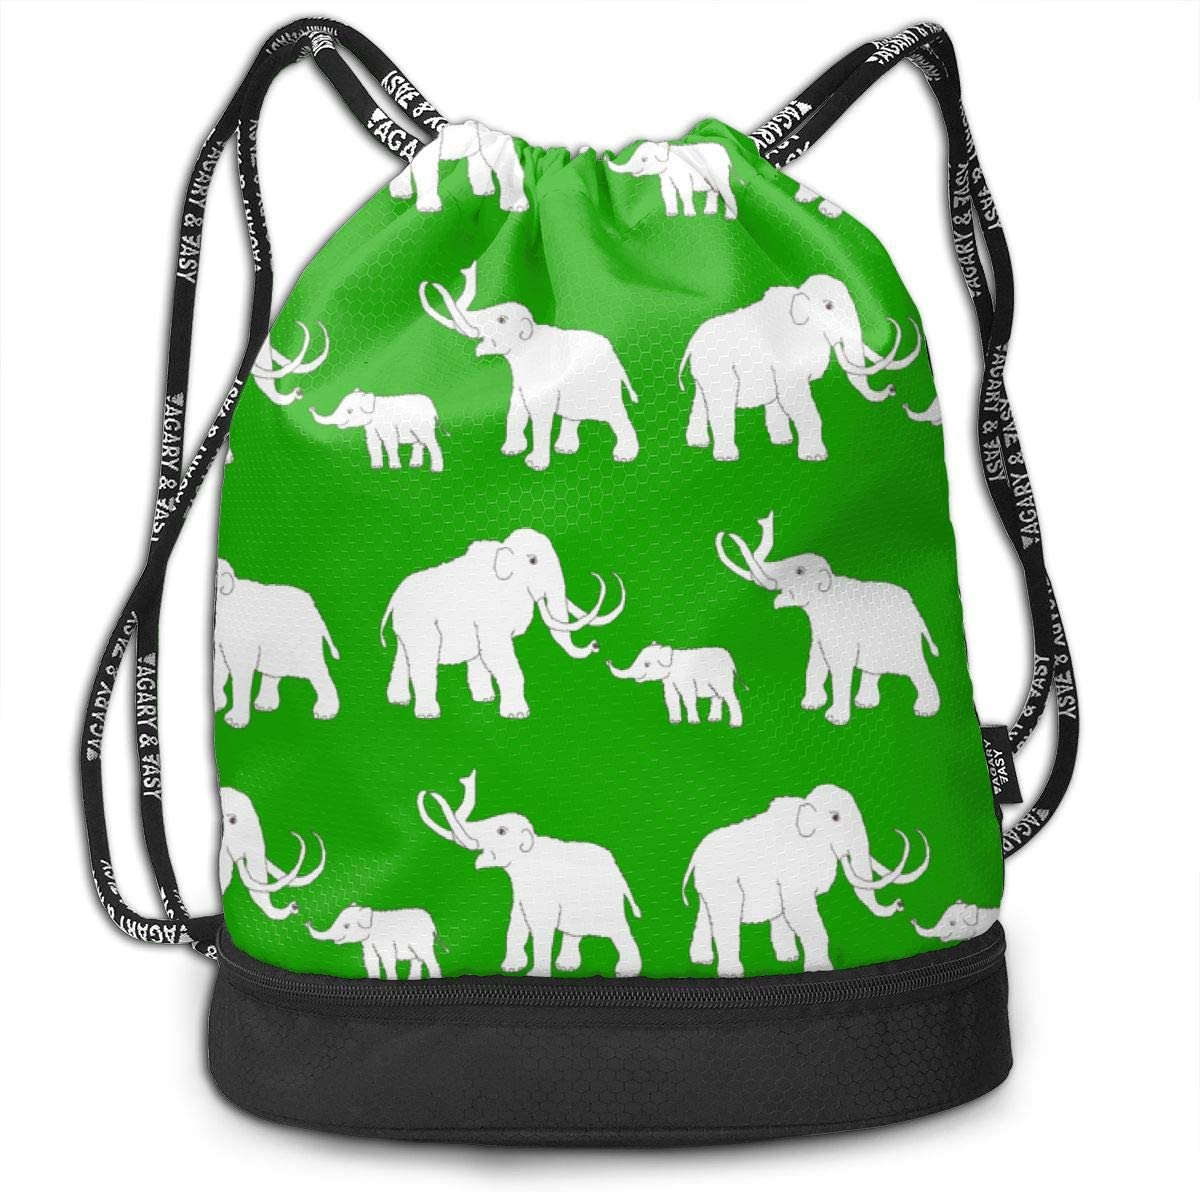 Mammoths Green Drawstring Backpack Sports Athletic Gym Cinch Sack String Storage Bags for Hiking Travel Beach